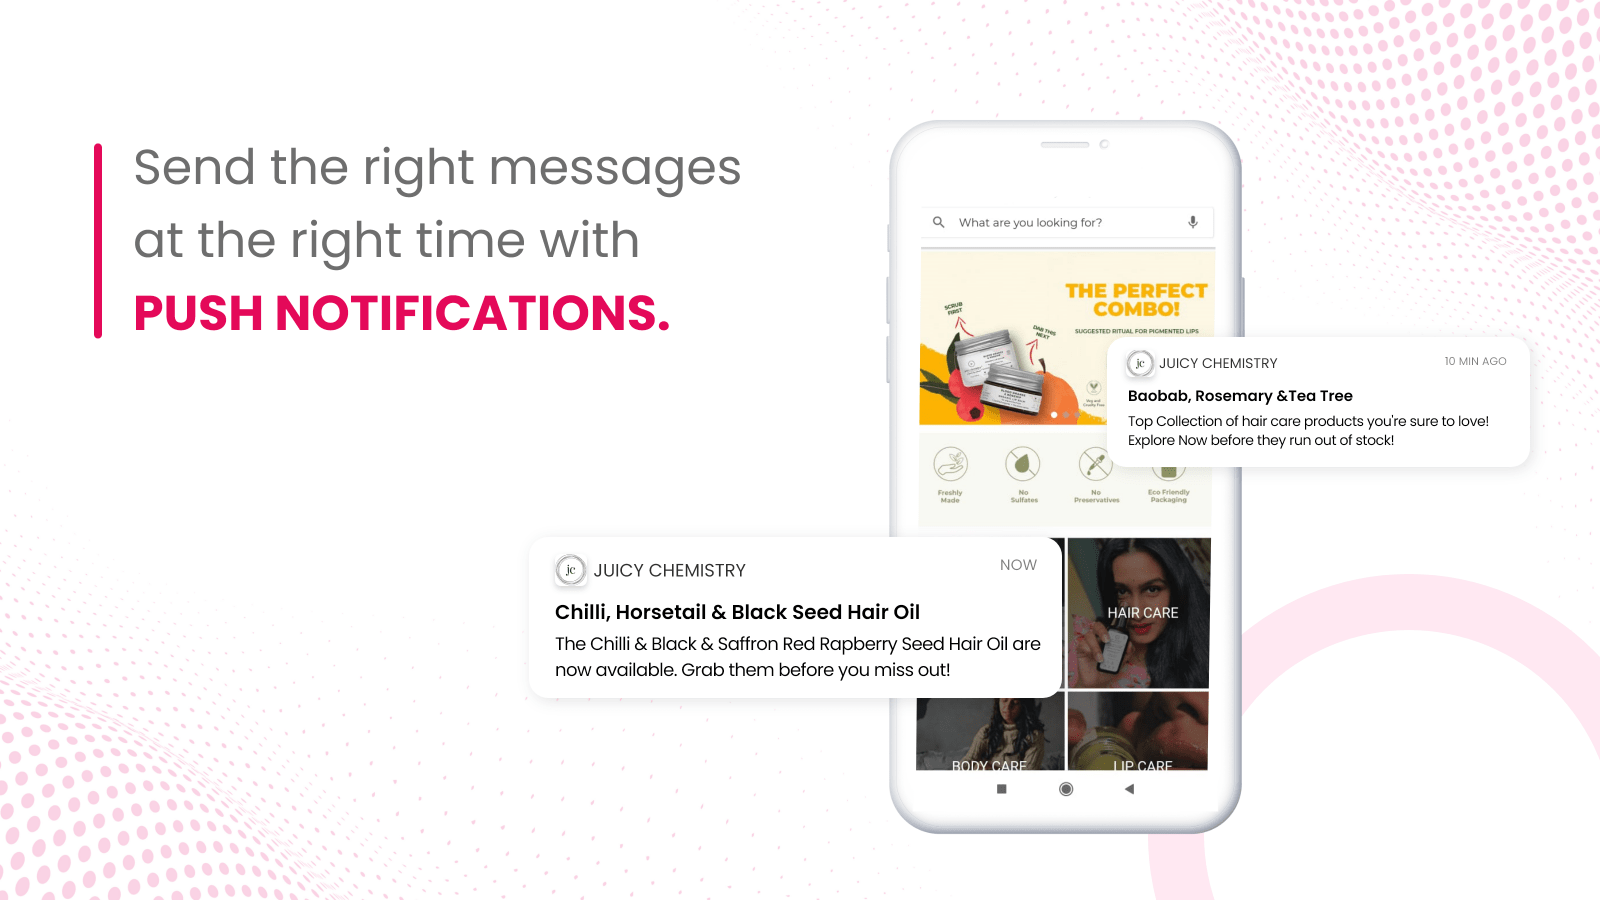 Send the right messages at the right time with push notification